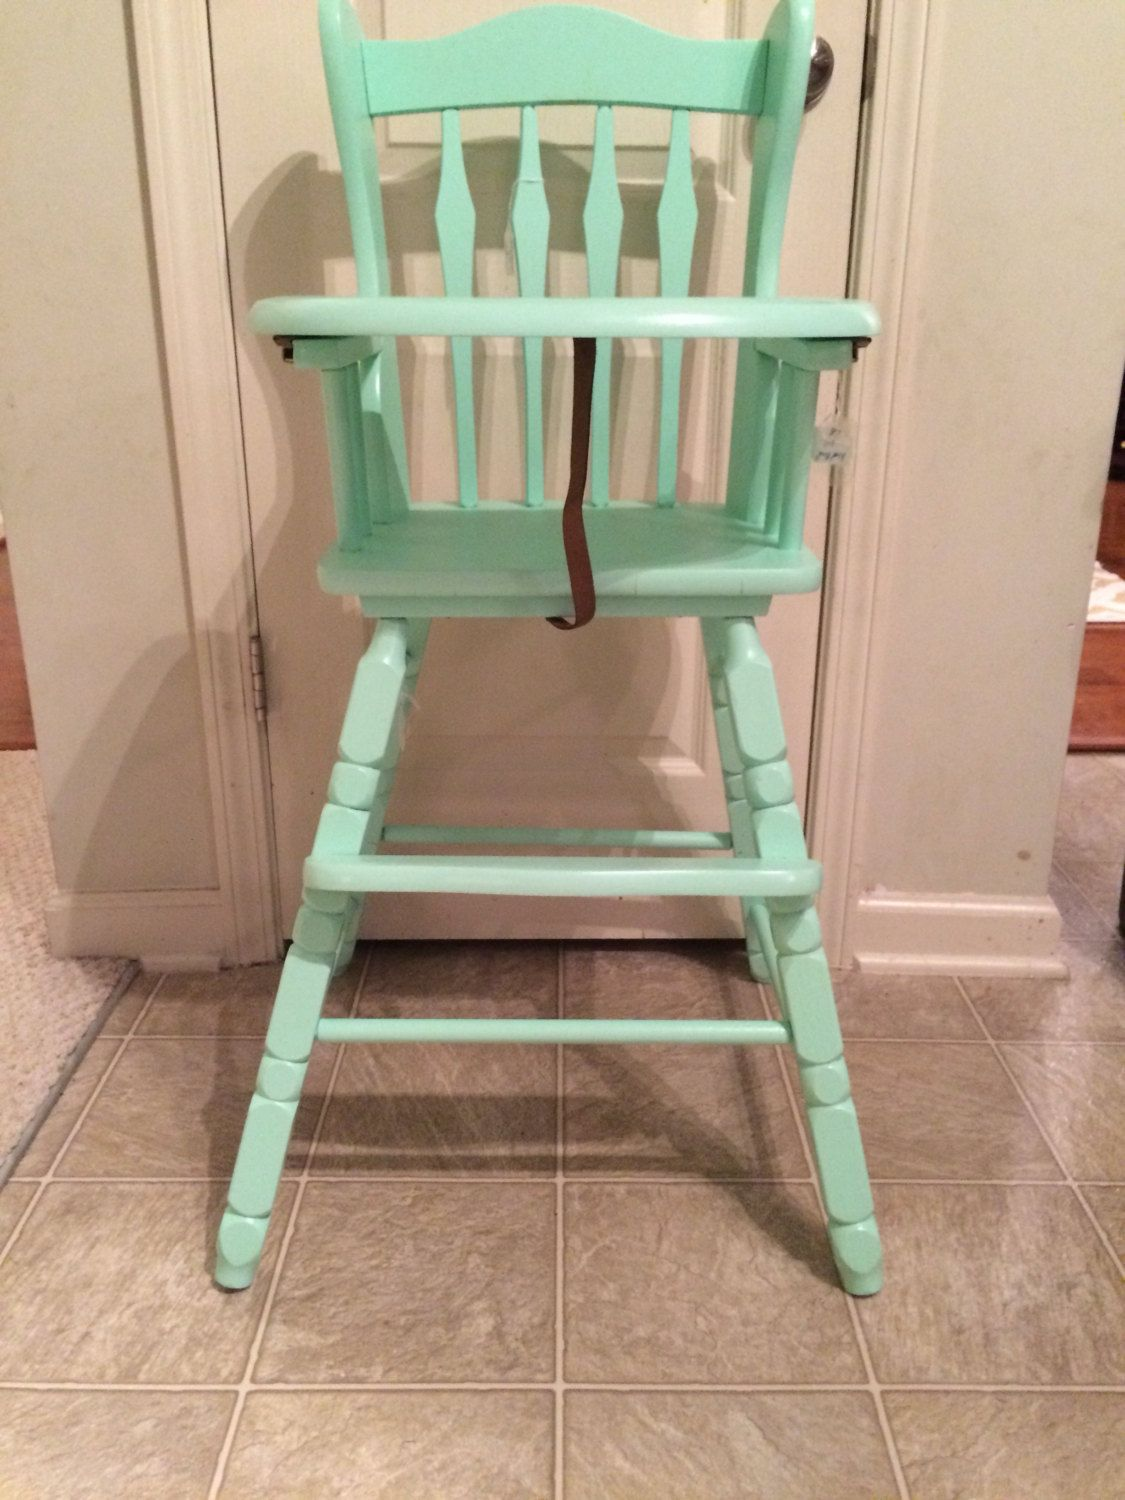 Painted wooden high chair - Vintage Wooden High Chair Jenny Lind Antique High Chair Vintage High Chair Custom Painted High Chair Wooden High Chair Antique